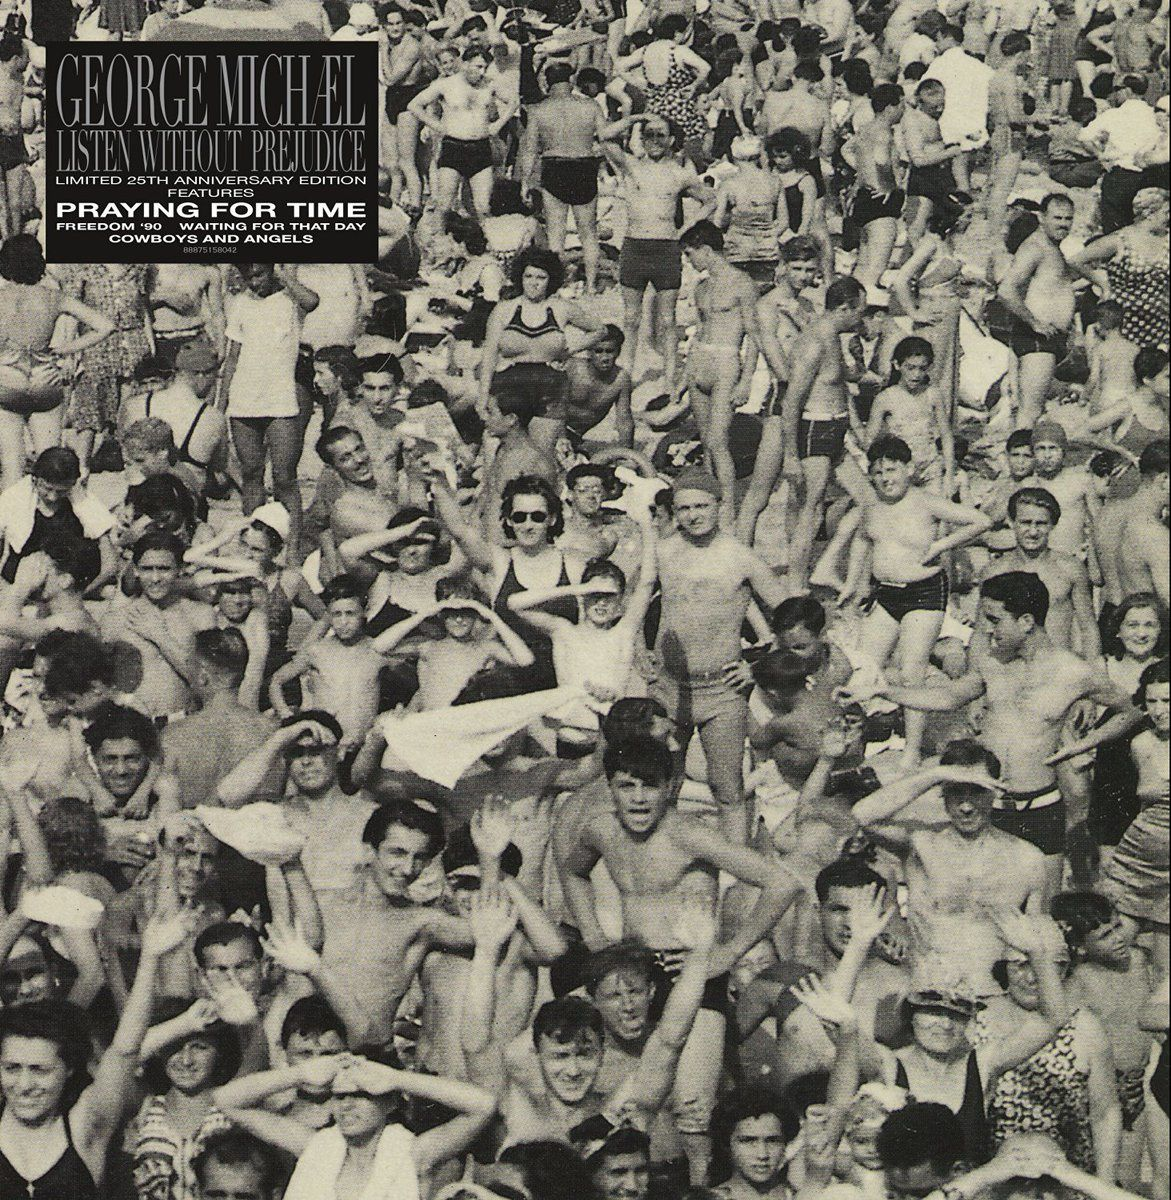 LUXUEUX LISTEN WITHOUT PREJUDICE 25